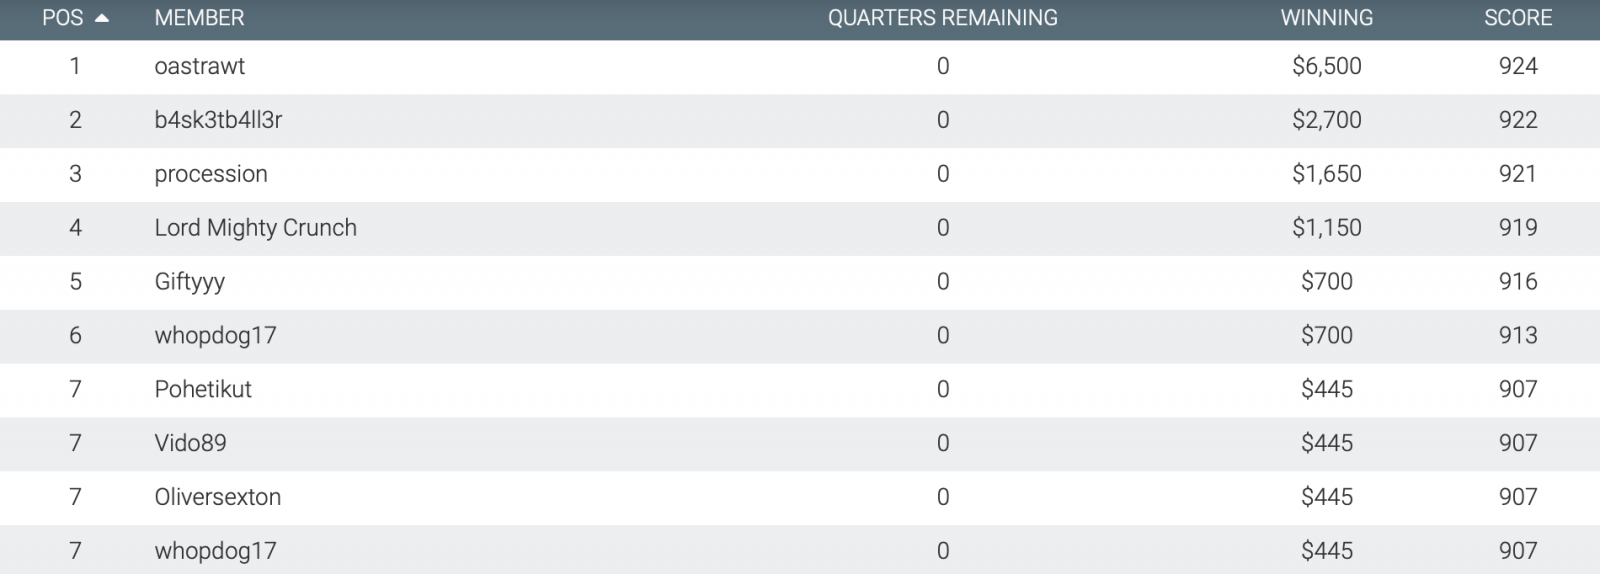 Moneyball Sunday